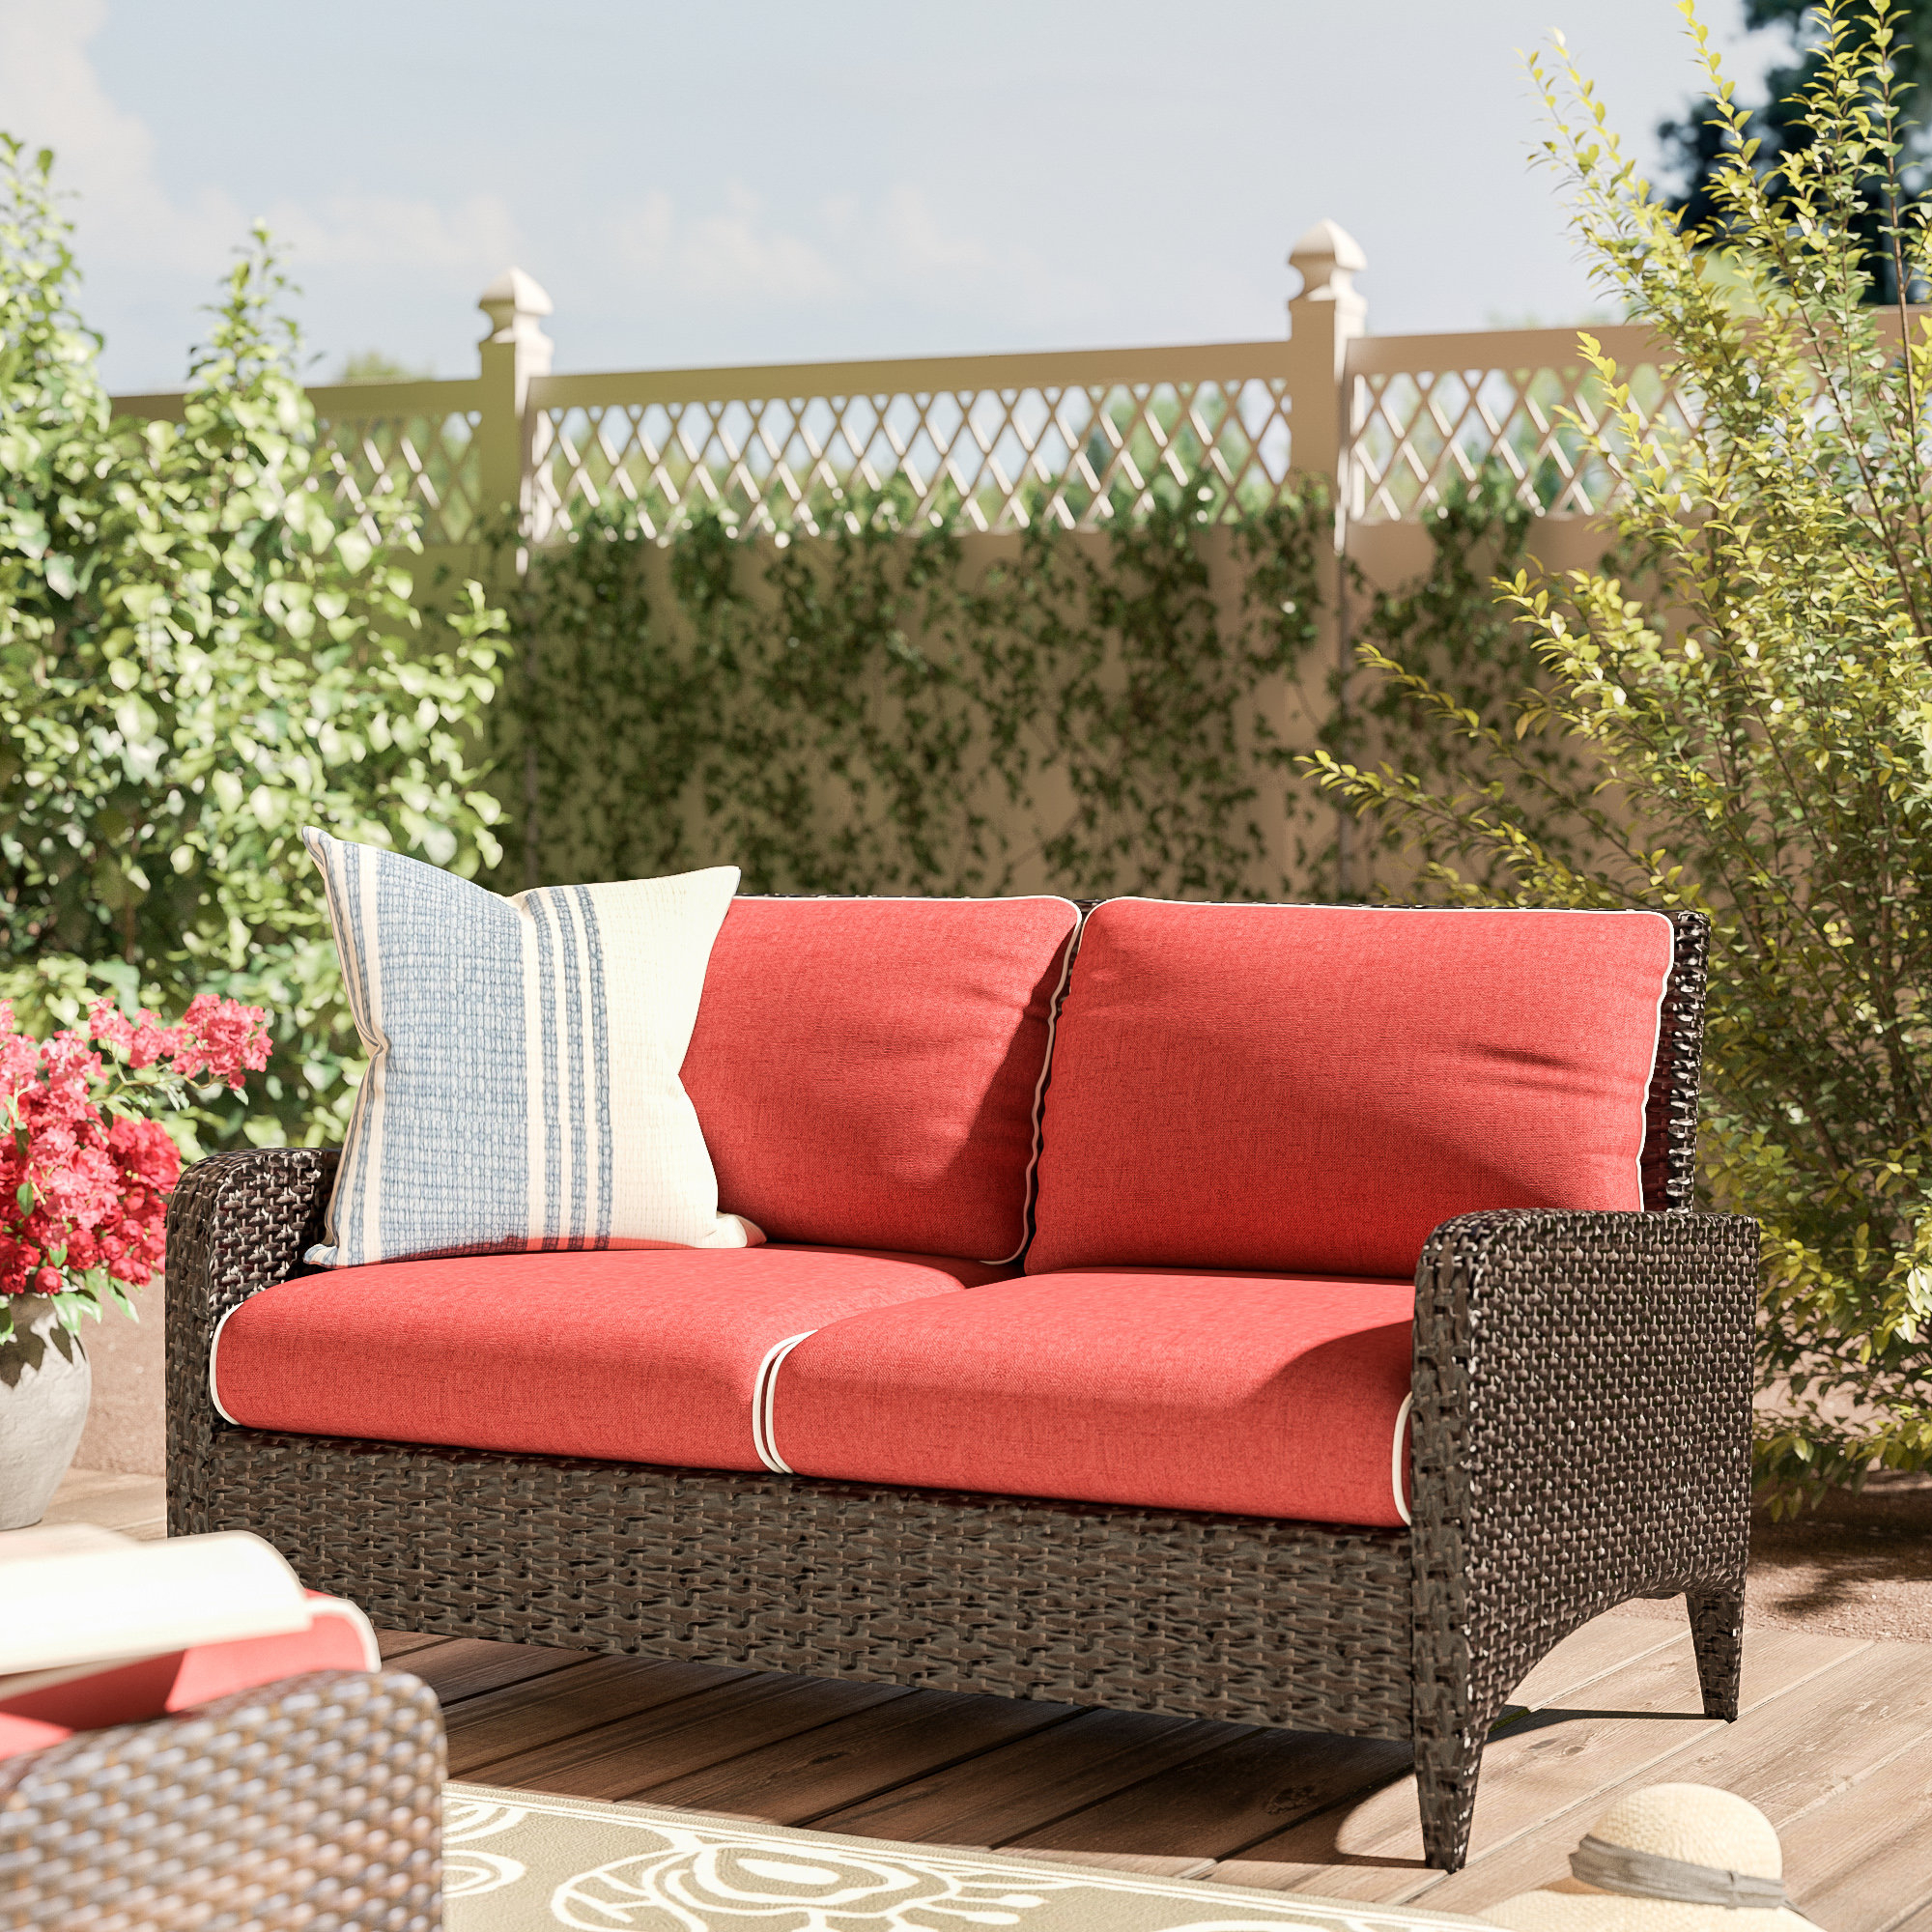 World Menagerie Mosca Patio Loveseat With Cushions & Reviews Regarding Latest Englewood Loveseats With Cushions (Gallery 20 of 20)